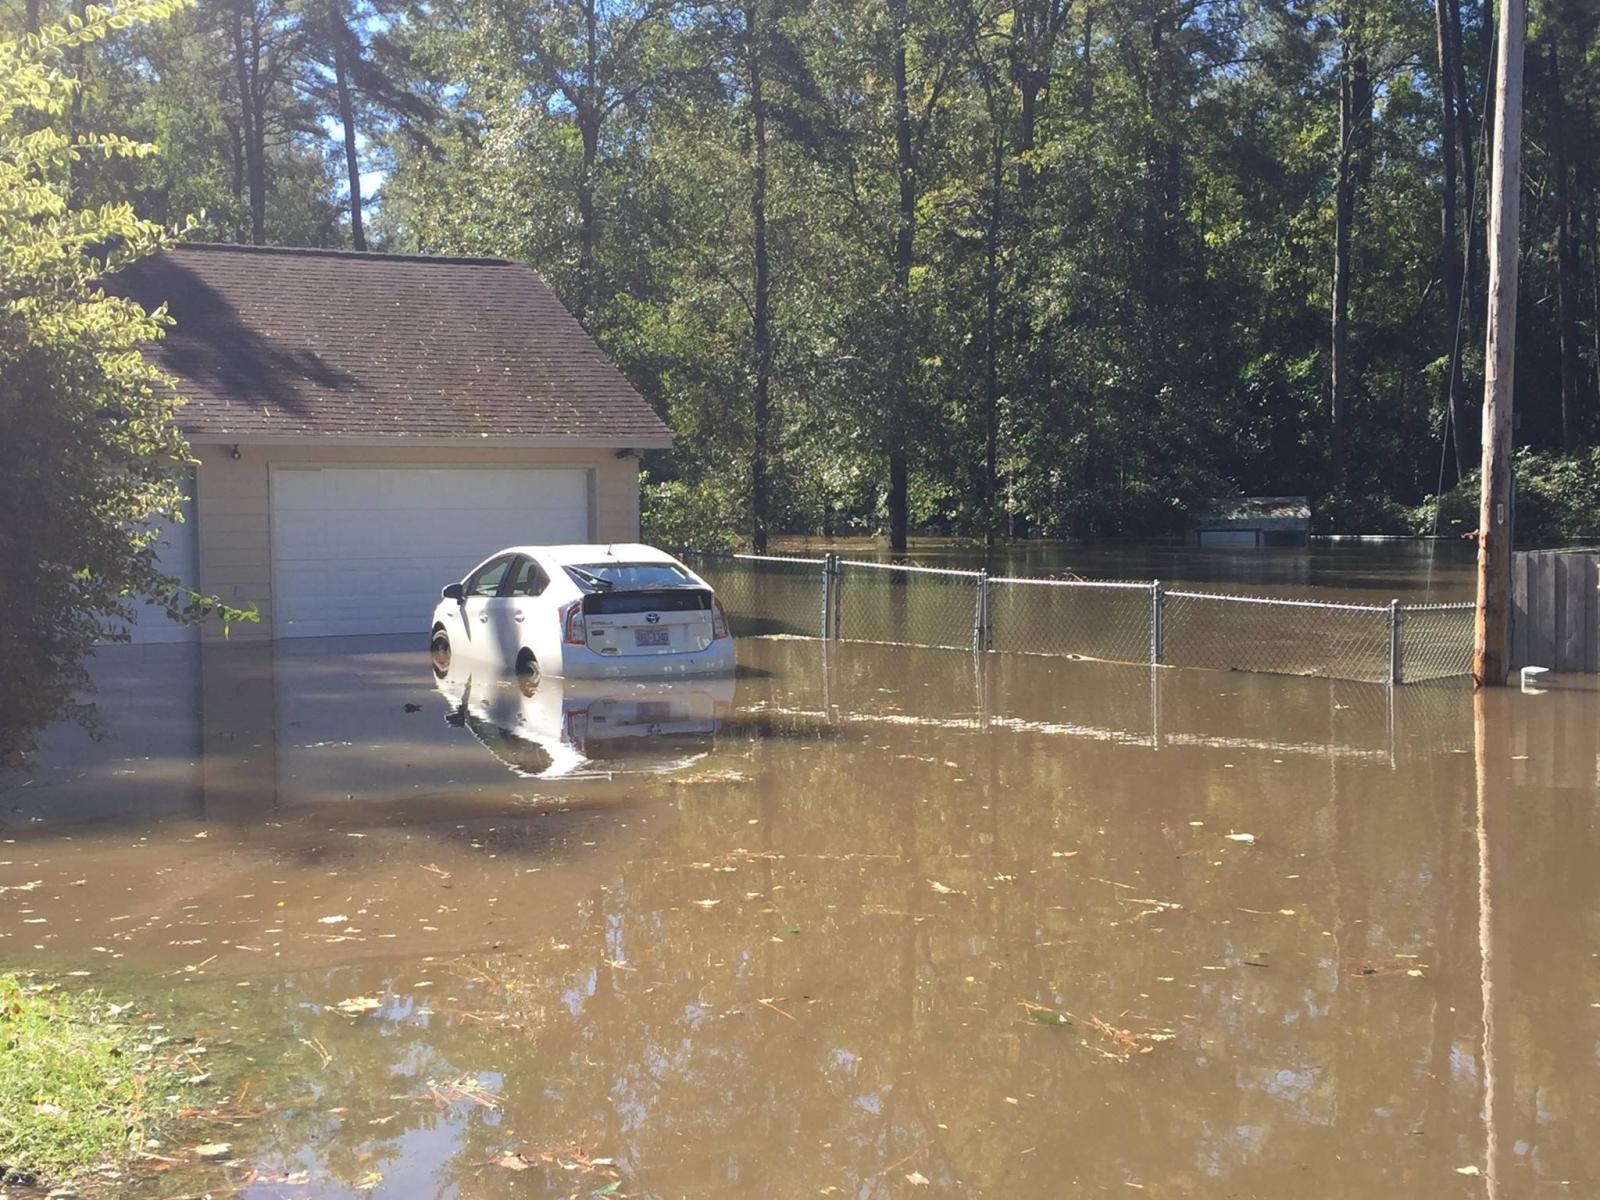 Neighborhoods were flooded along Old Goat Road near Lumberton, NC.